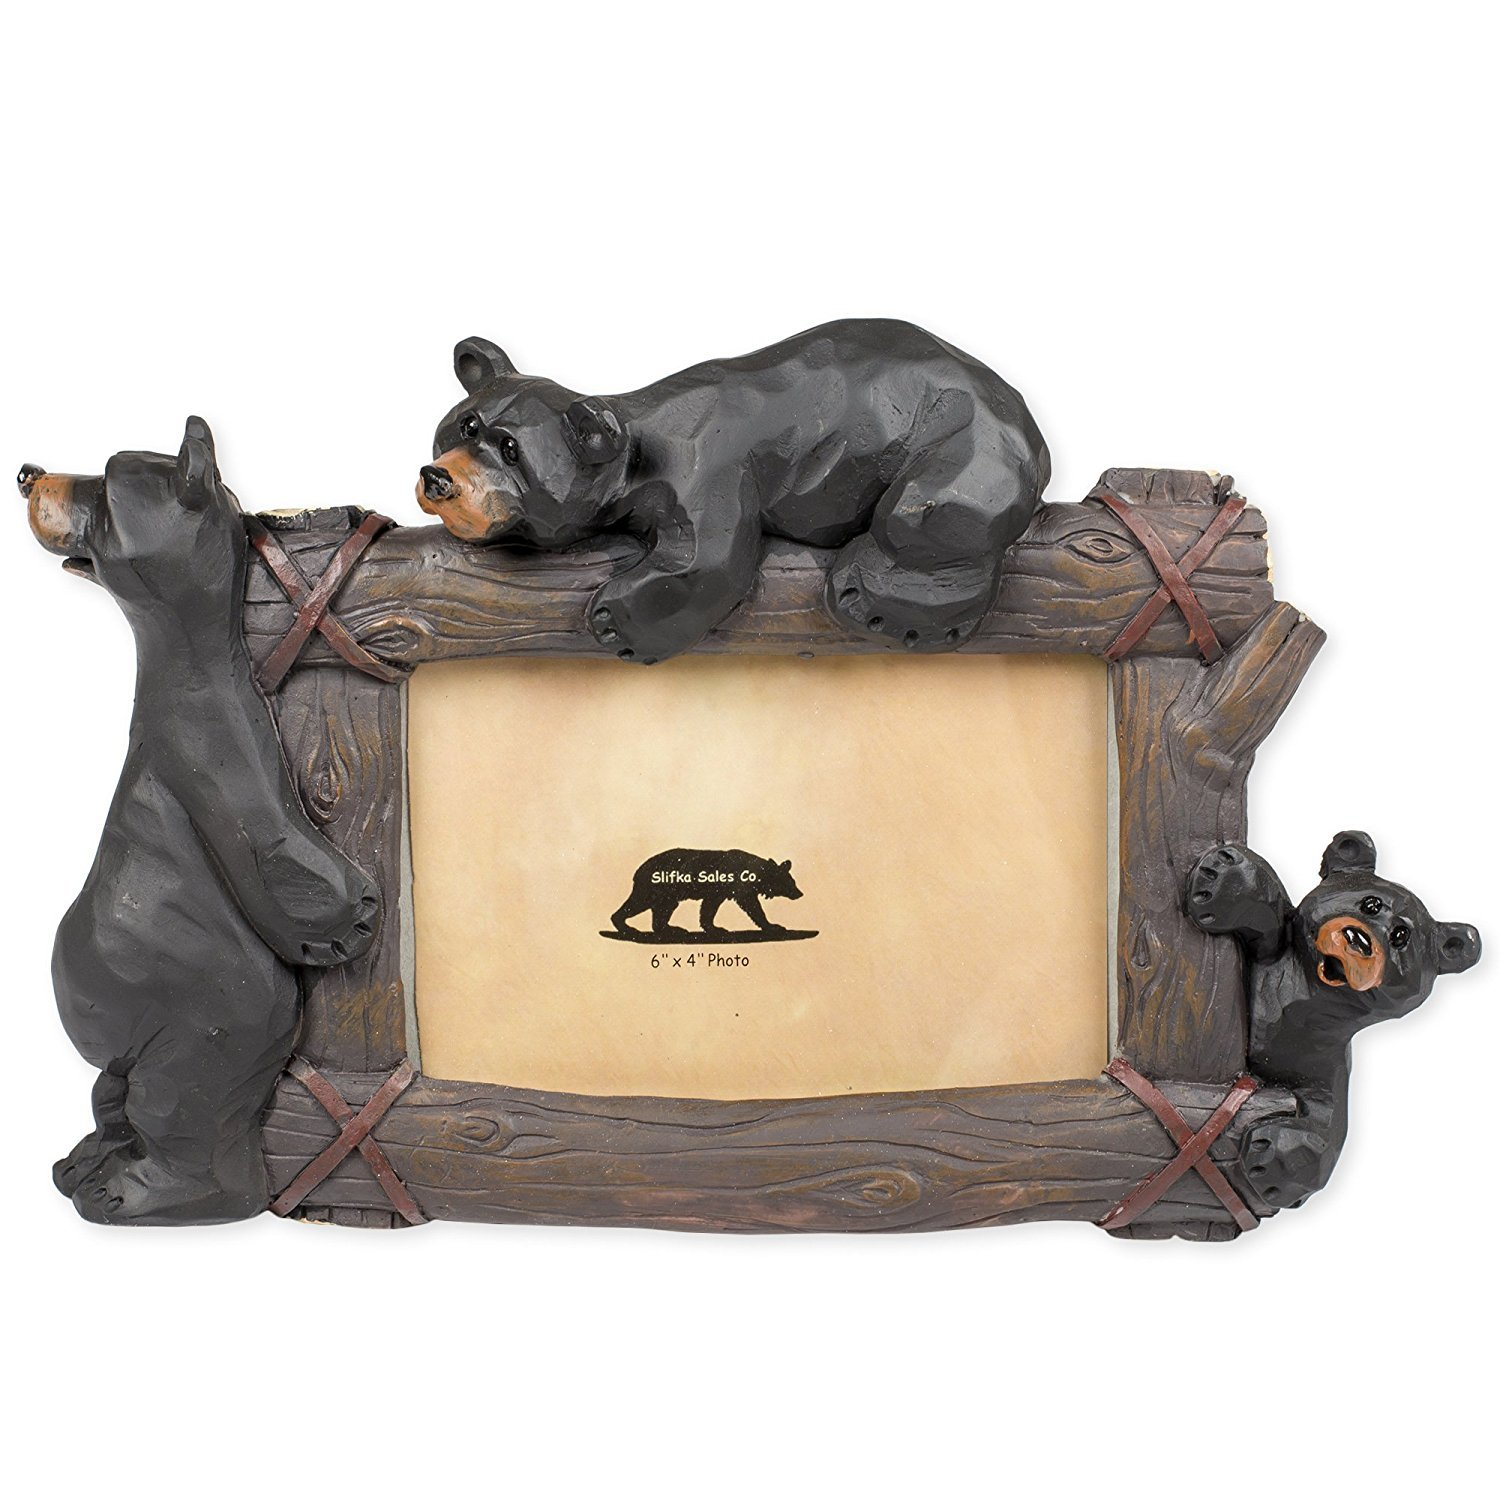 Climbing Bears 11 x 2 x 7.5 Inch Resin Crafted Tabletop 4x6 Picture Frame by Slifka Sales Co.